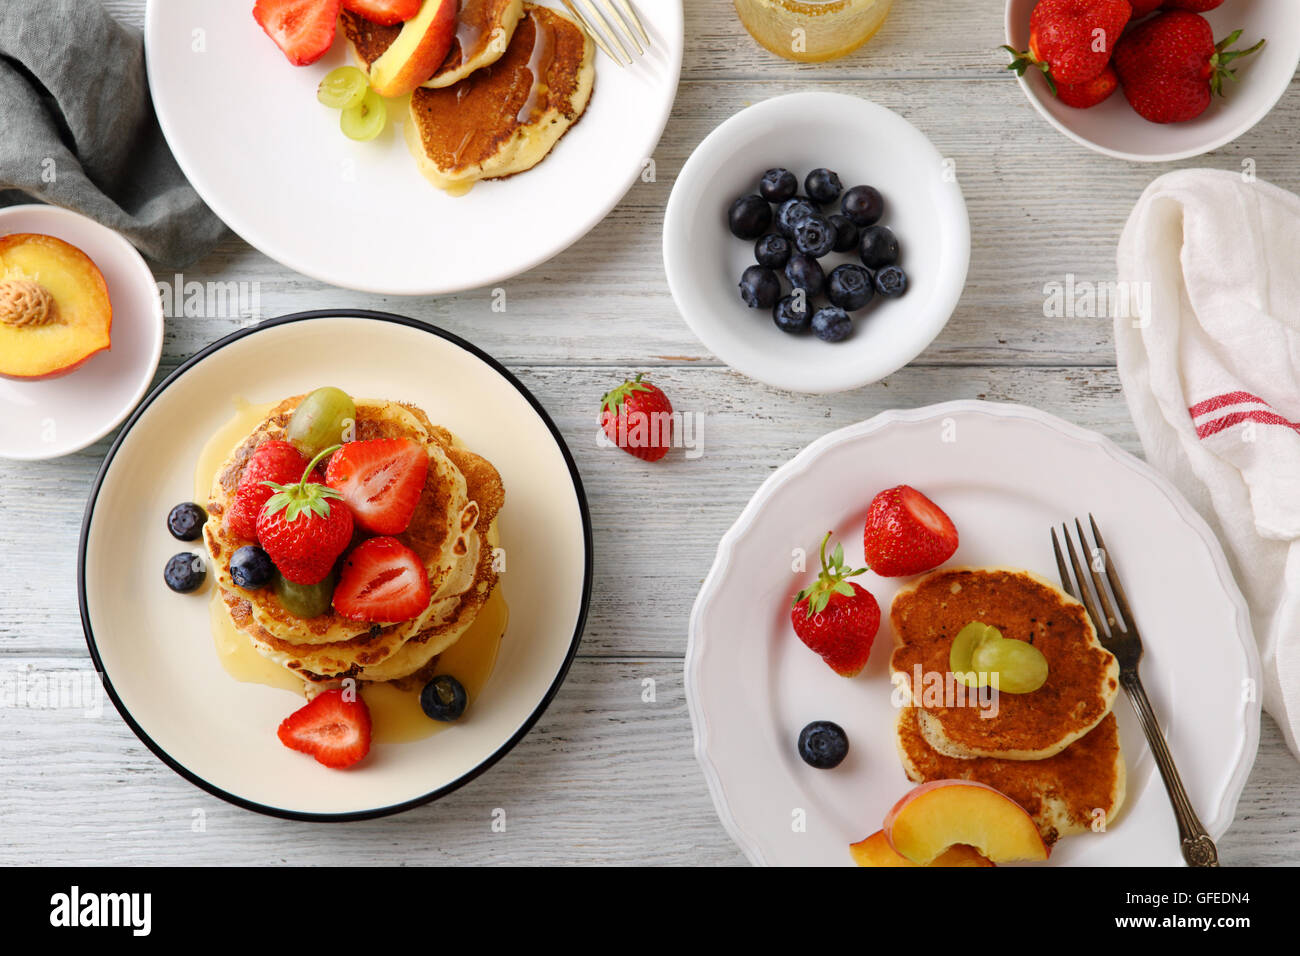 breakfast table set with pancakes, food top view Stock Photo